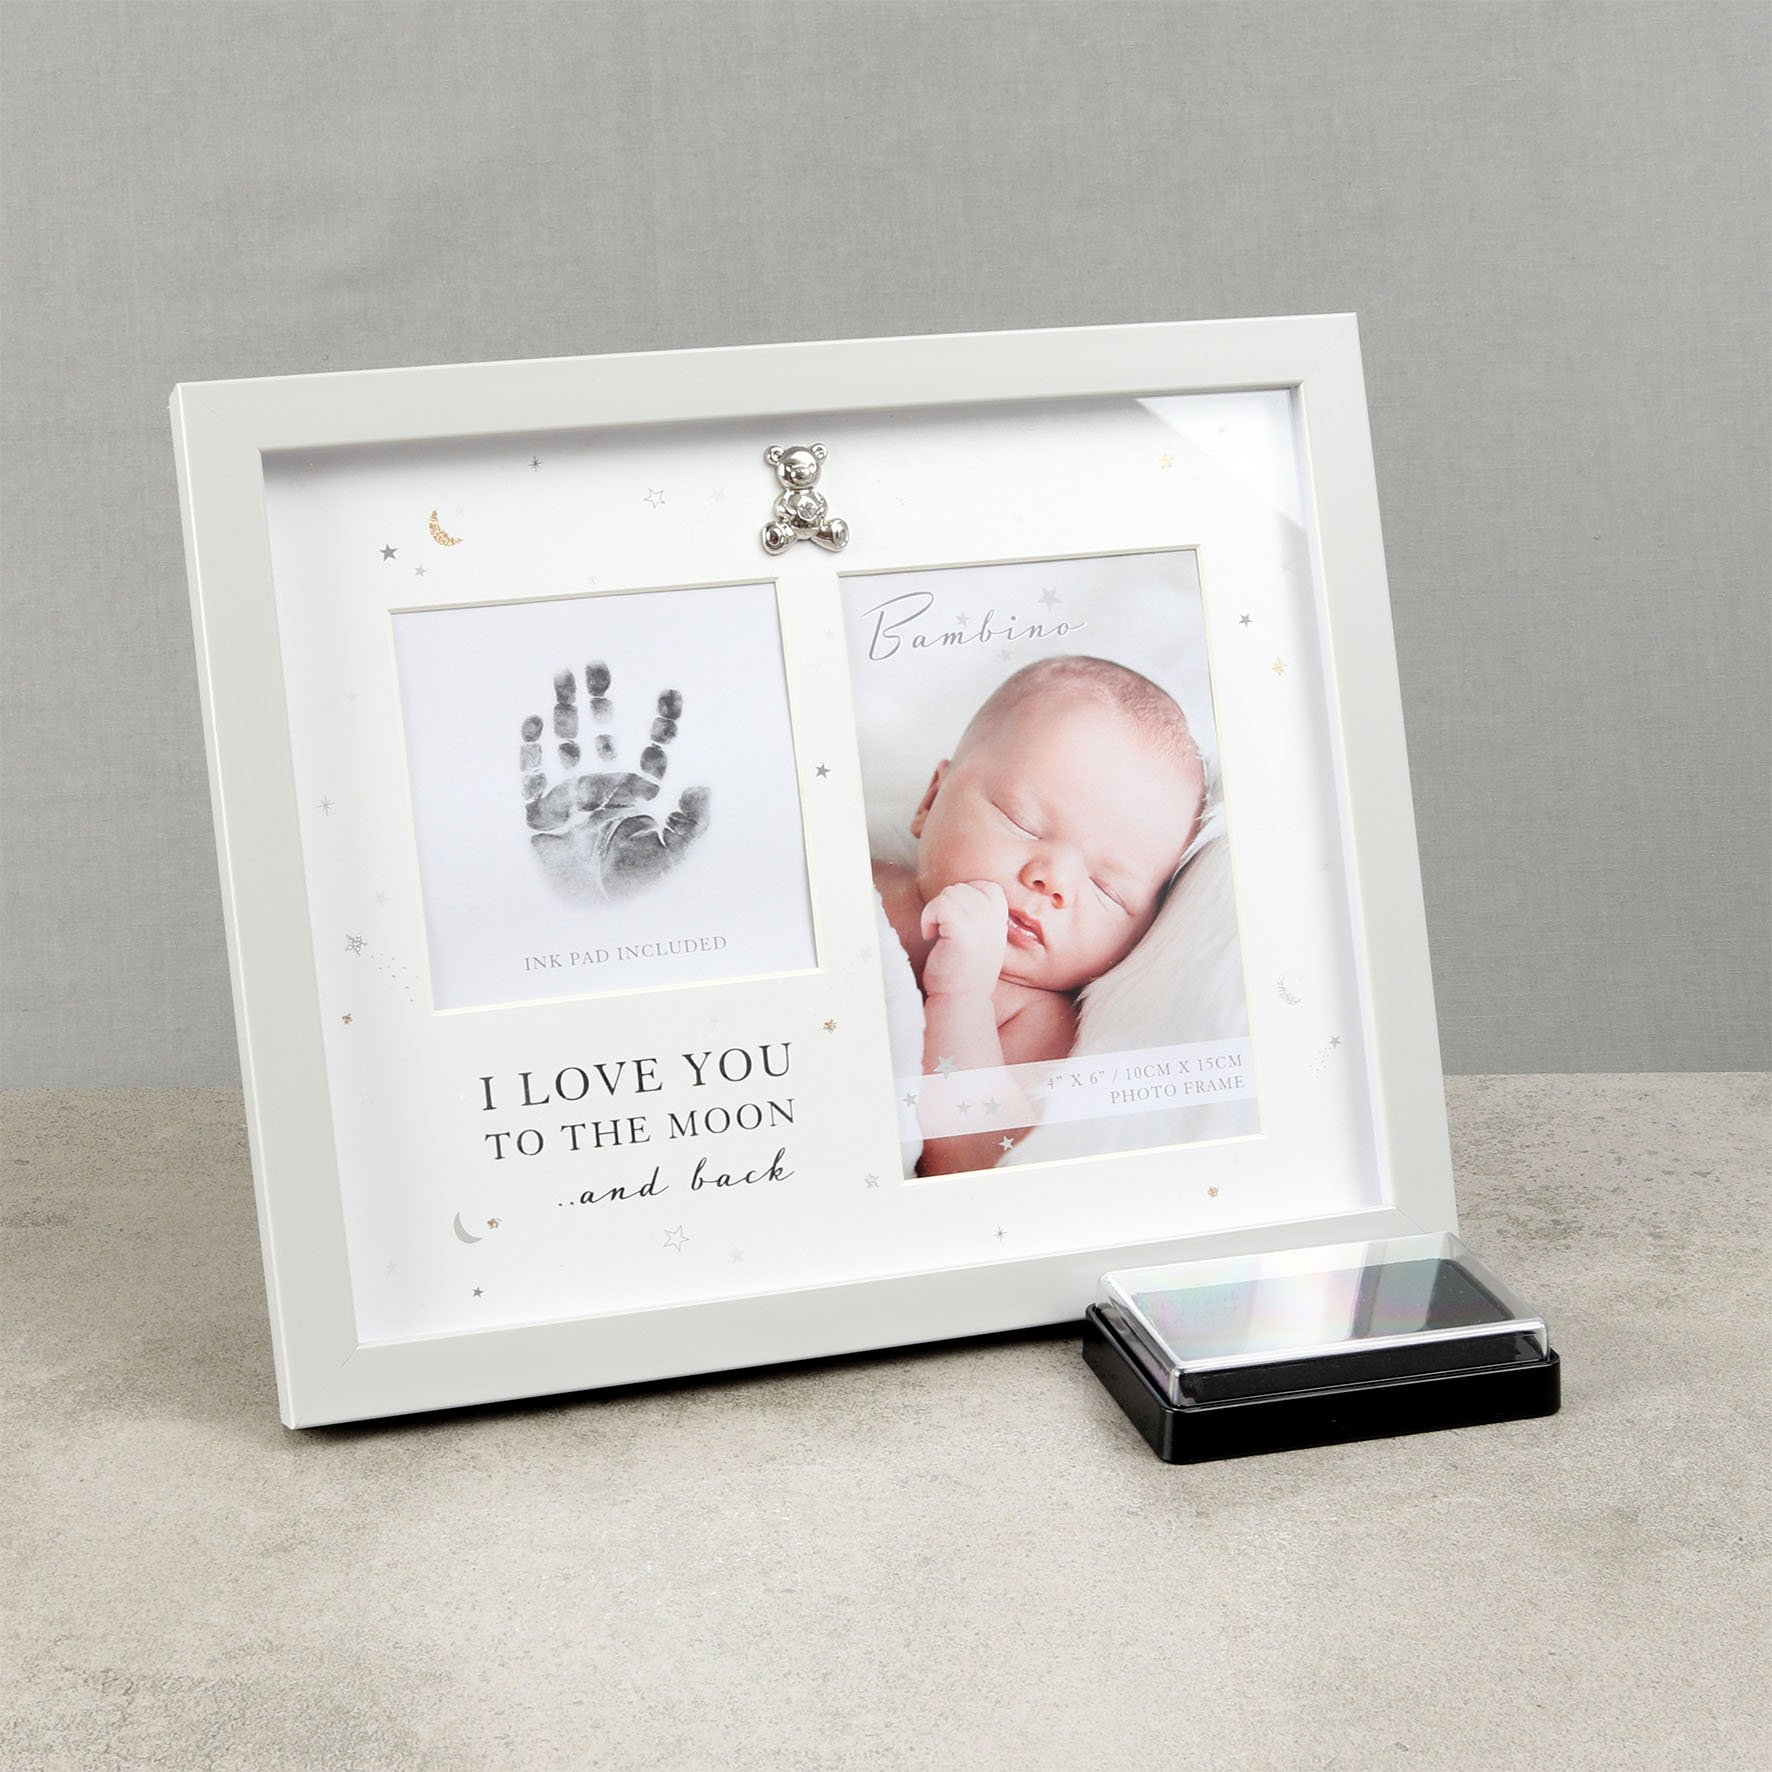 Bambino Arrival Countdown Frame The Gift Experience 4 x 3